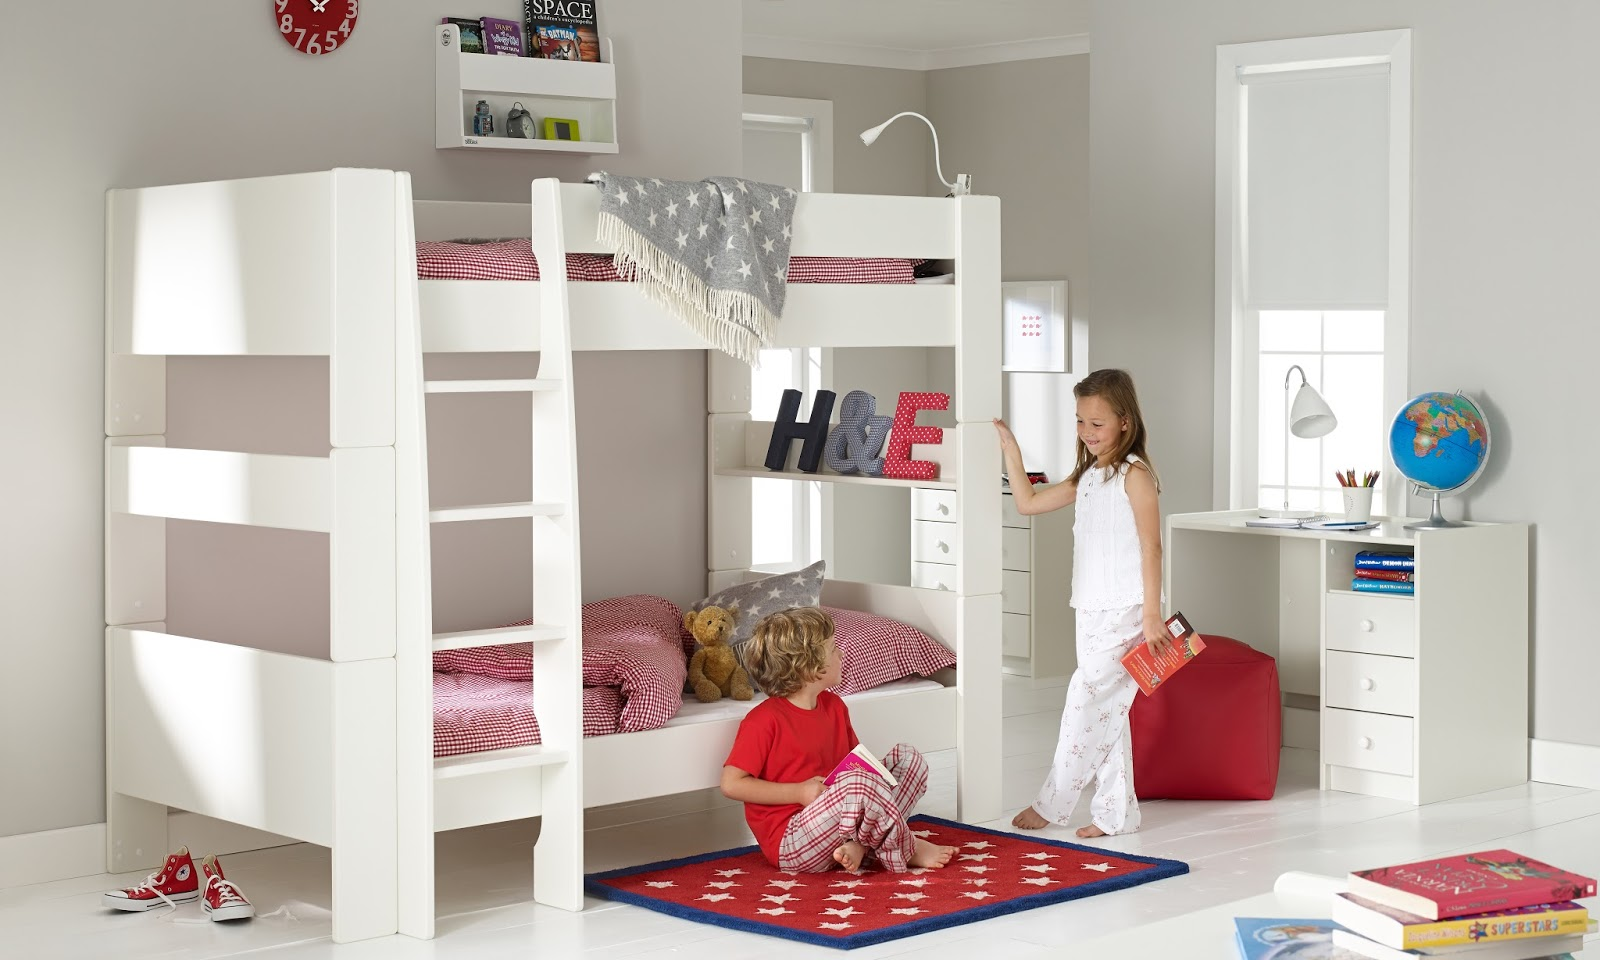 , Why You Should Choose a Bunk Bed and a Chance to Win a Solitaire Bunkbed